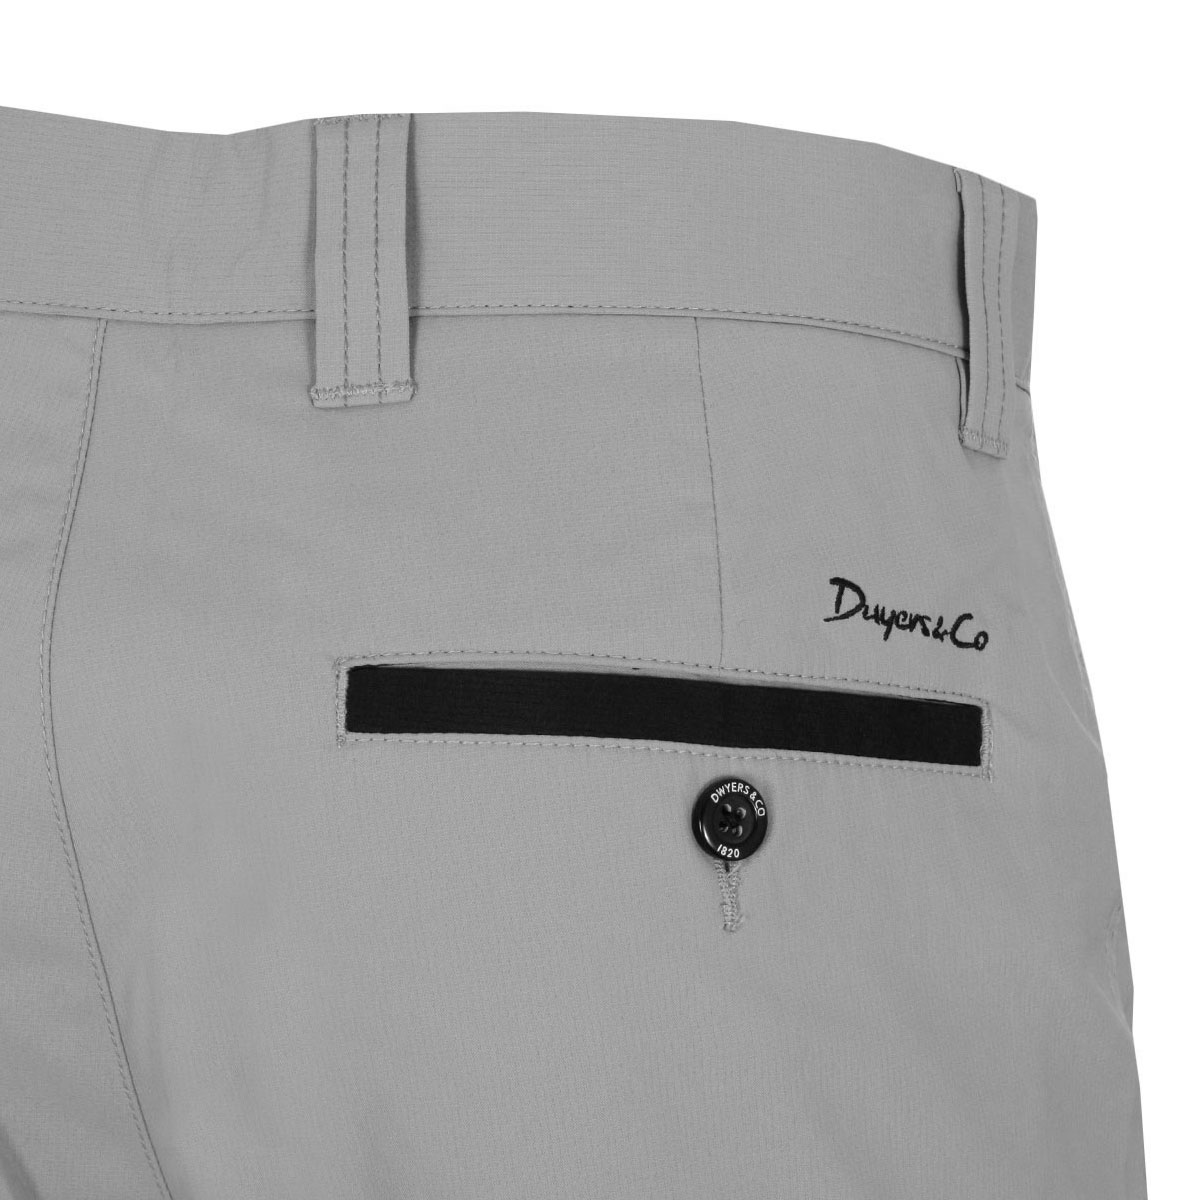 Dwyers-amp-Co-Mens-Matchplay-Stretch-Lightweight-Golf-Trousers-38-OFF-RRP thumbnail 36